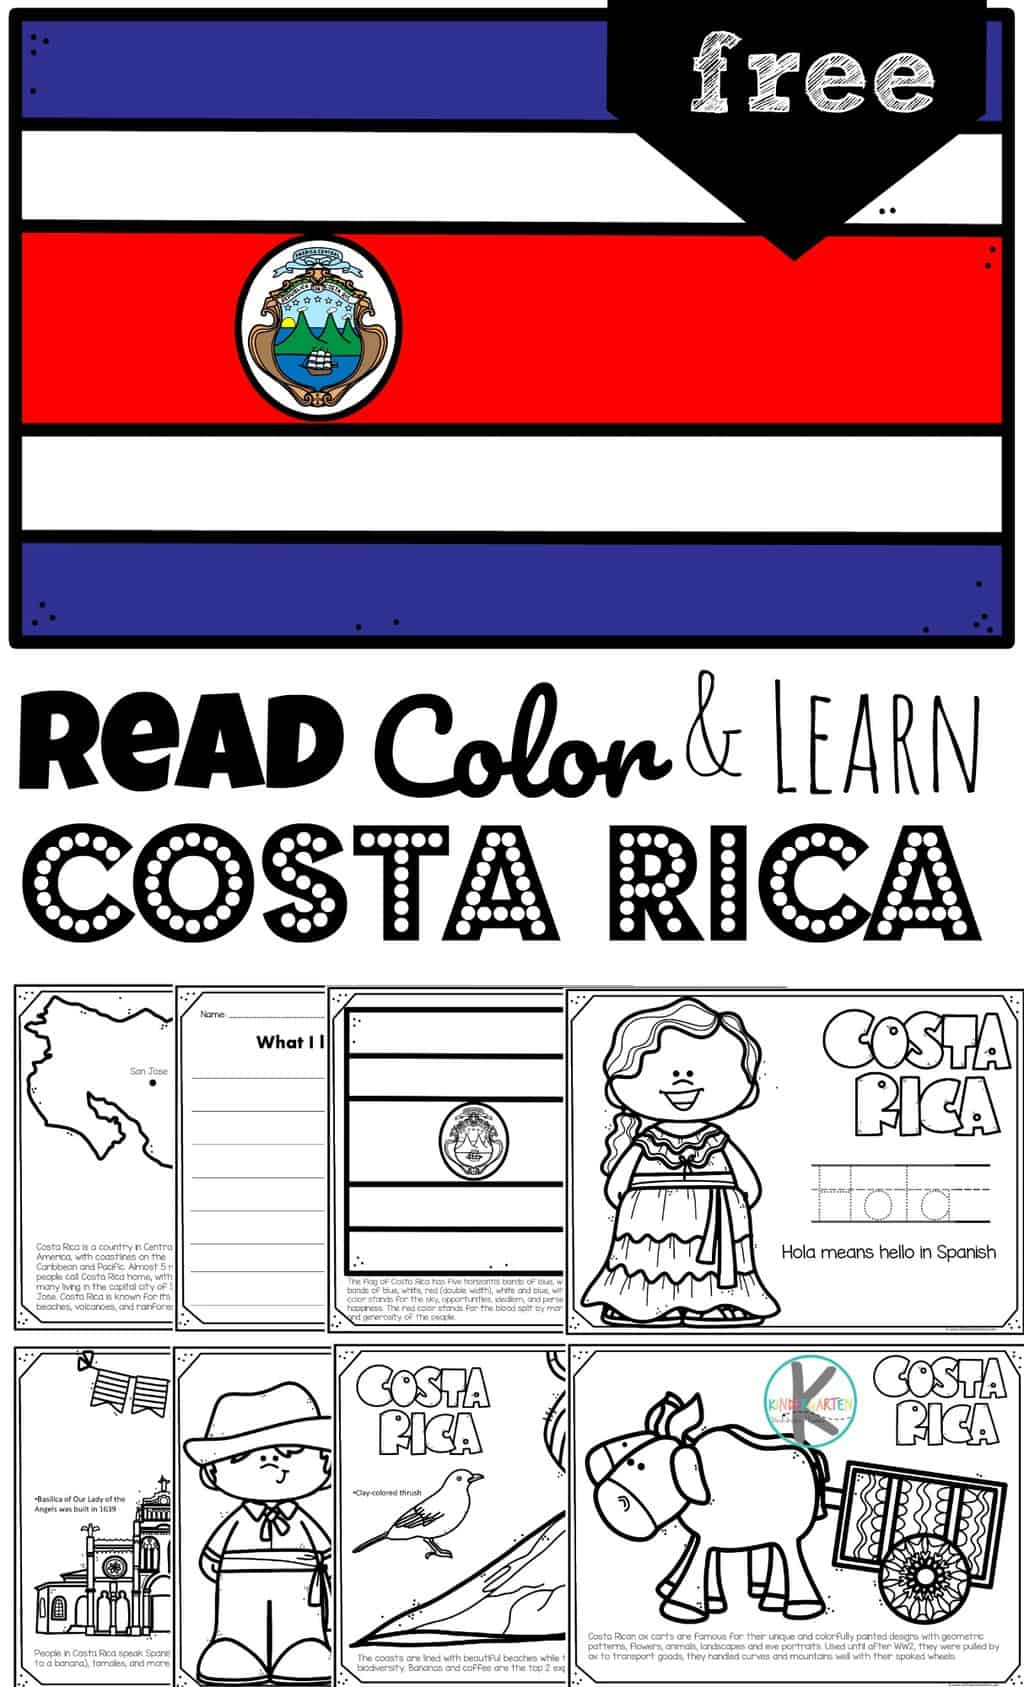 Free Read Color And Learn About Costa Rica